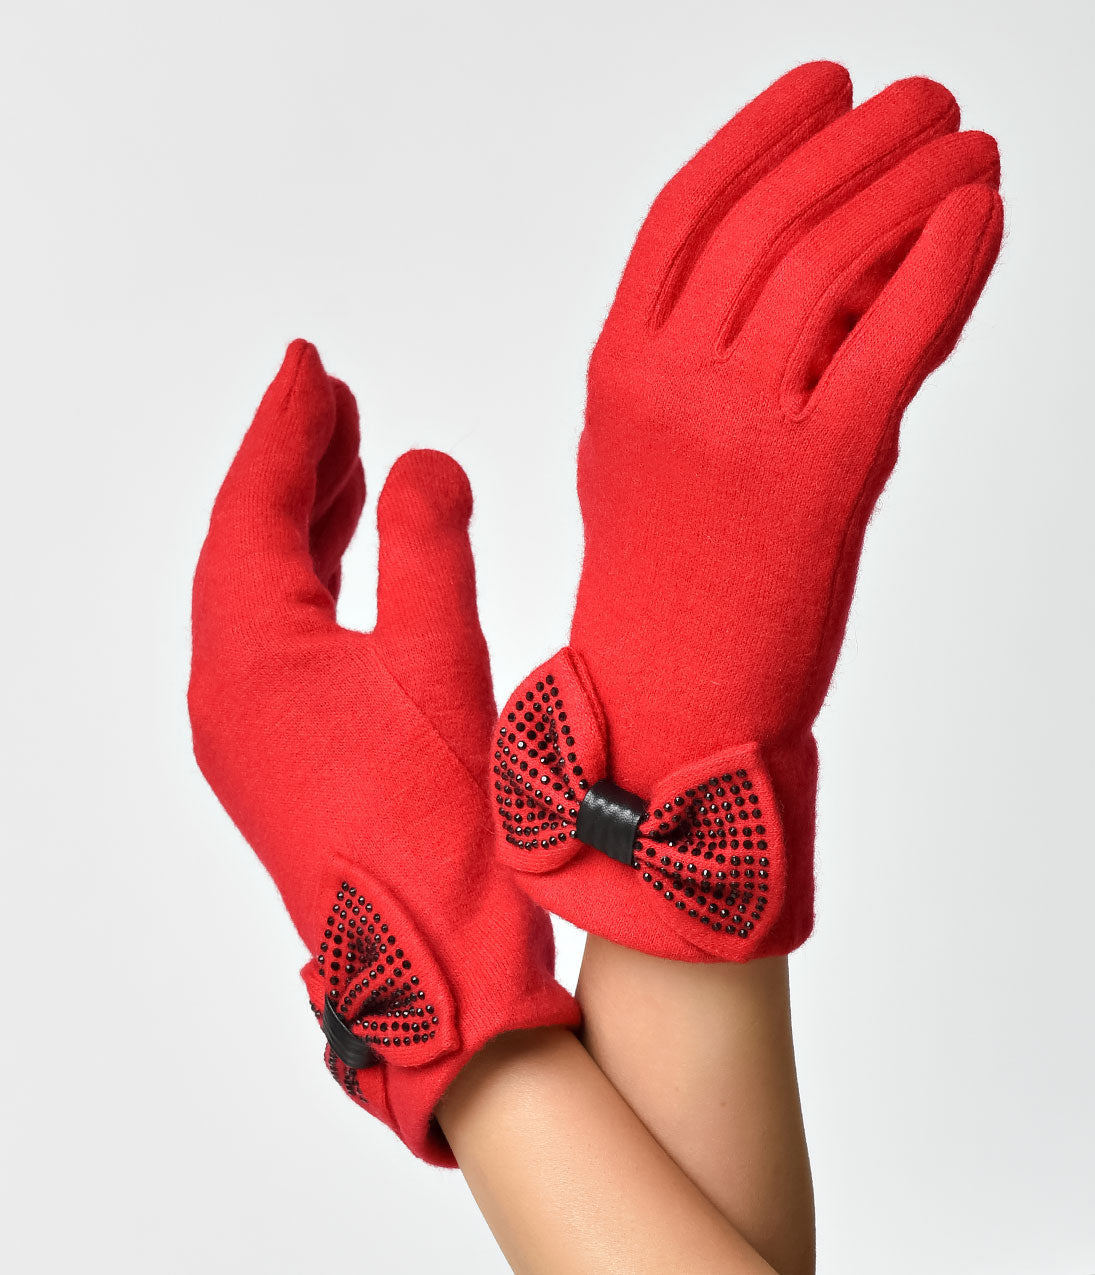 Vintage Gloves – Styles from 1900 to 1960s Red  Black Rhinestone Bow Jolie Gloves $28.00 AT vintagedancer.com